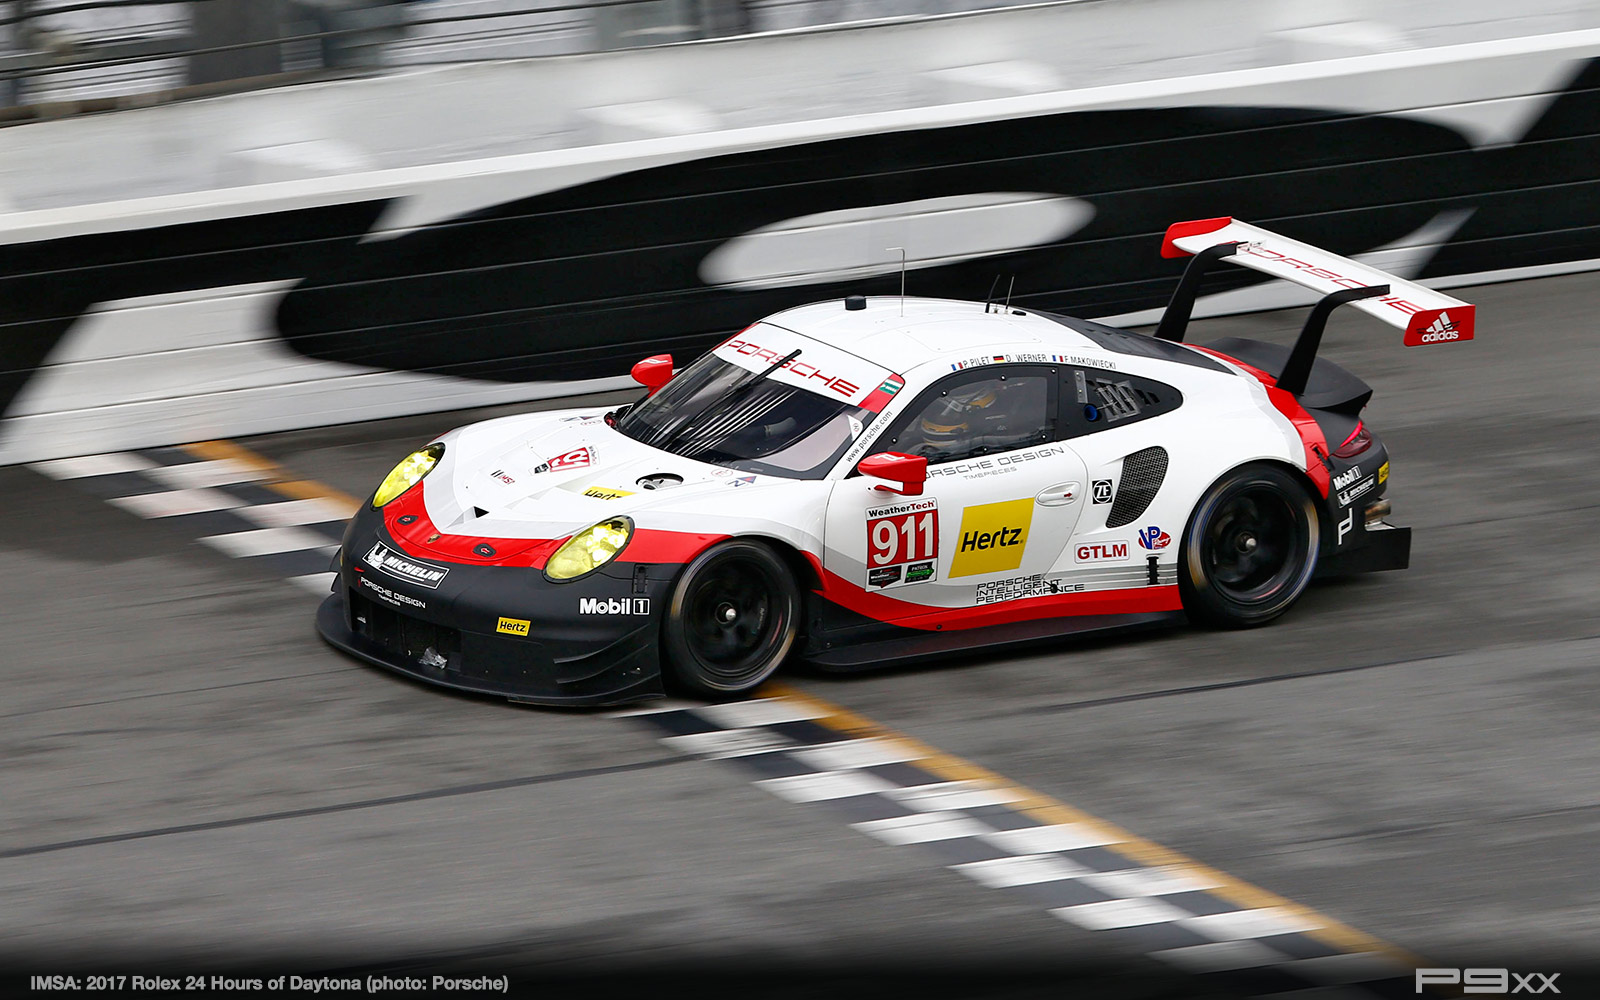 imsa race debut of new 911 rsr at rolex 24 p9xx. Black Bedroom Furniture Sets. Home Design Ideas